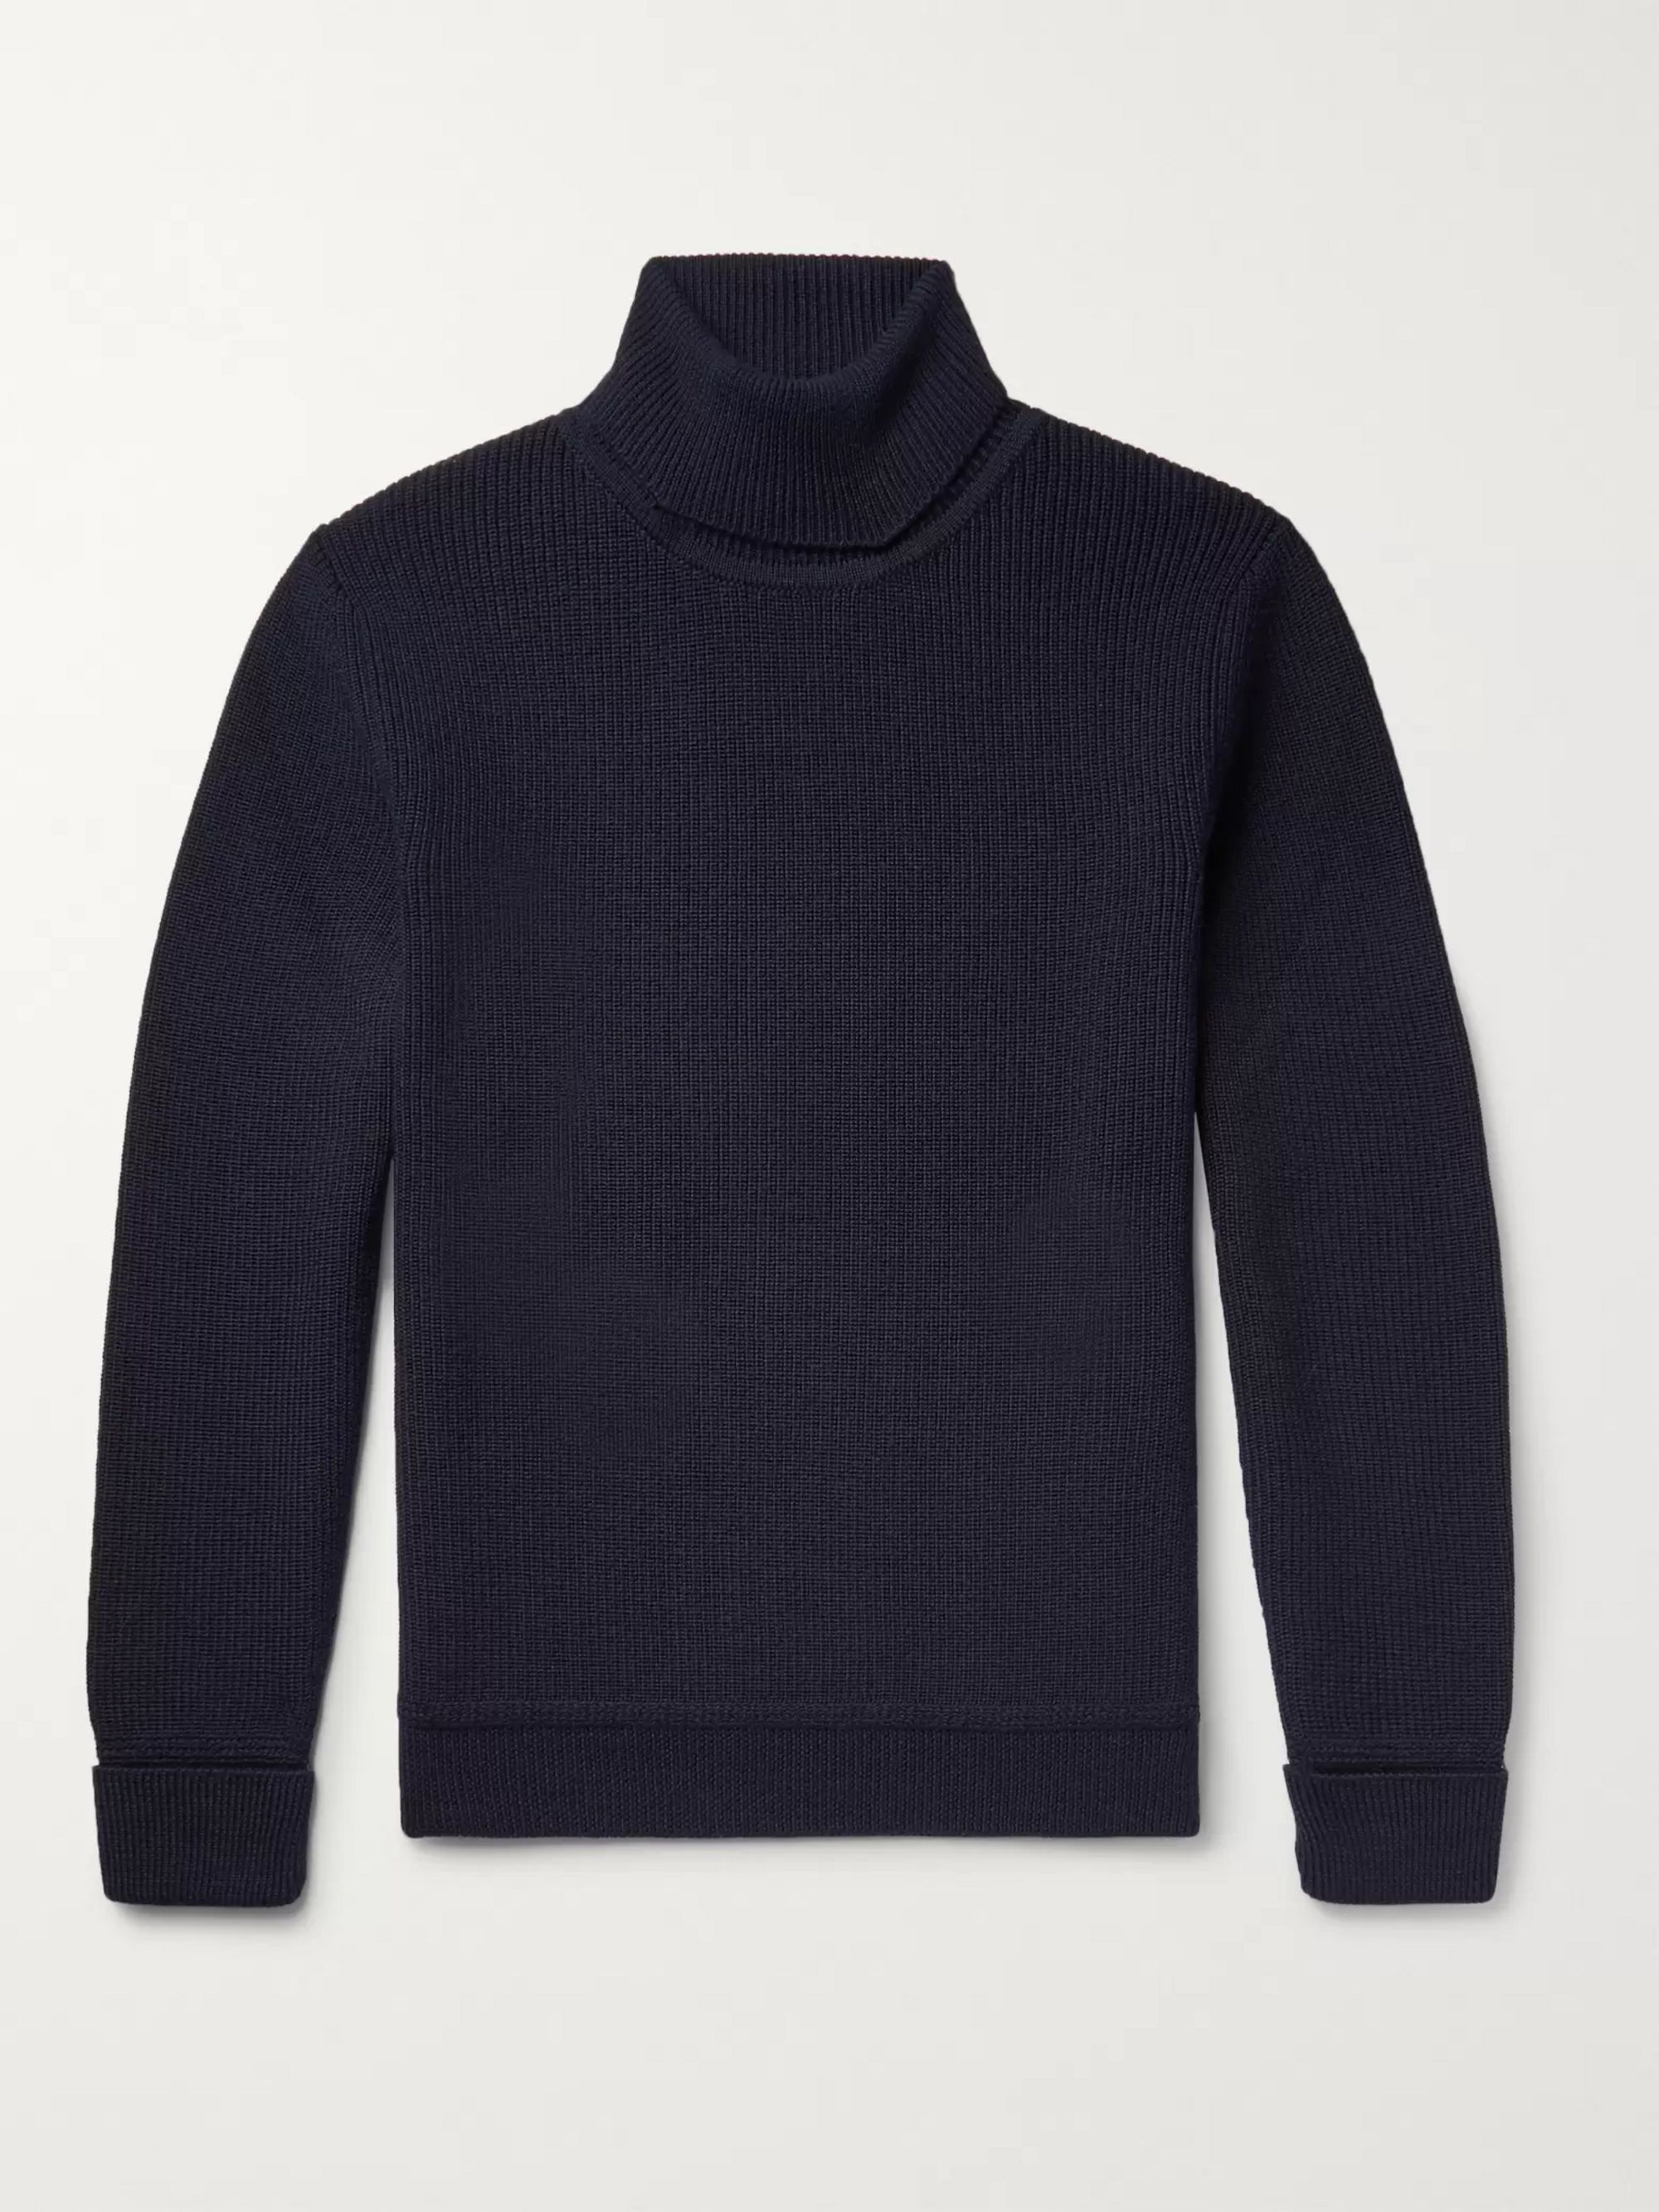 SALLE PRIVÉE Art Ribbed Virgin Wool Rollneck Sweater